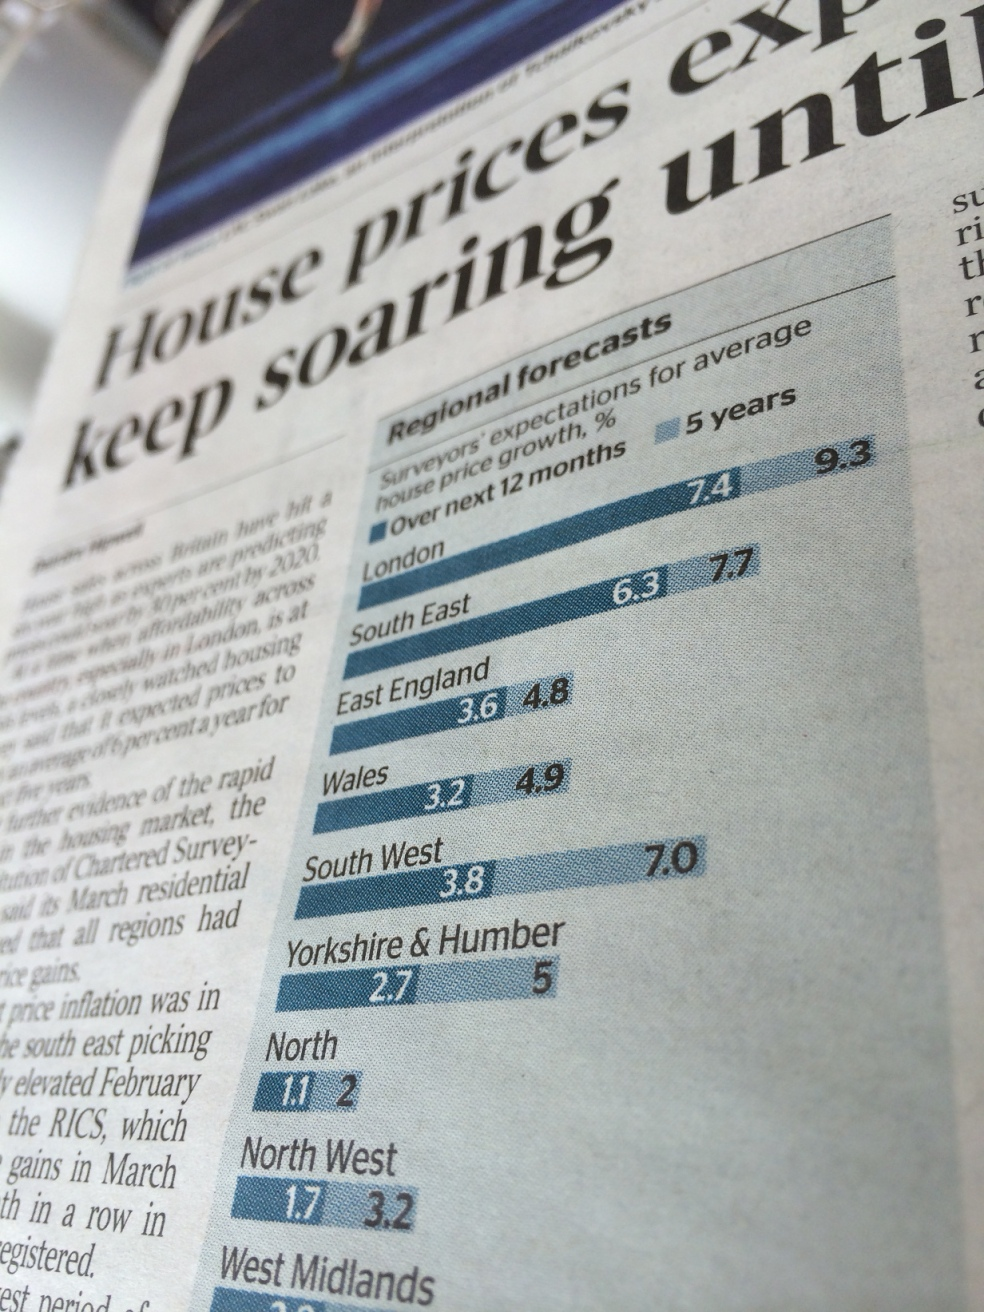 RICS forecast on house price rises in The Times